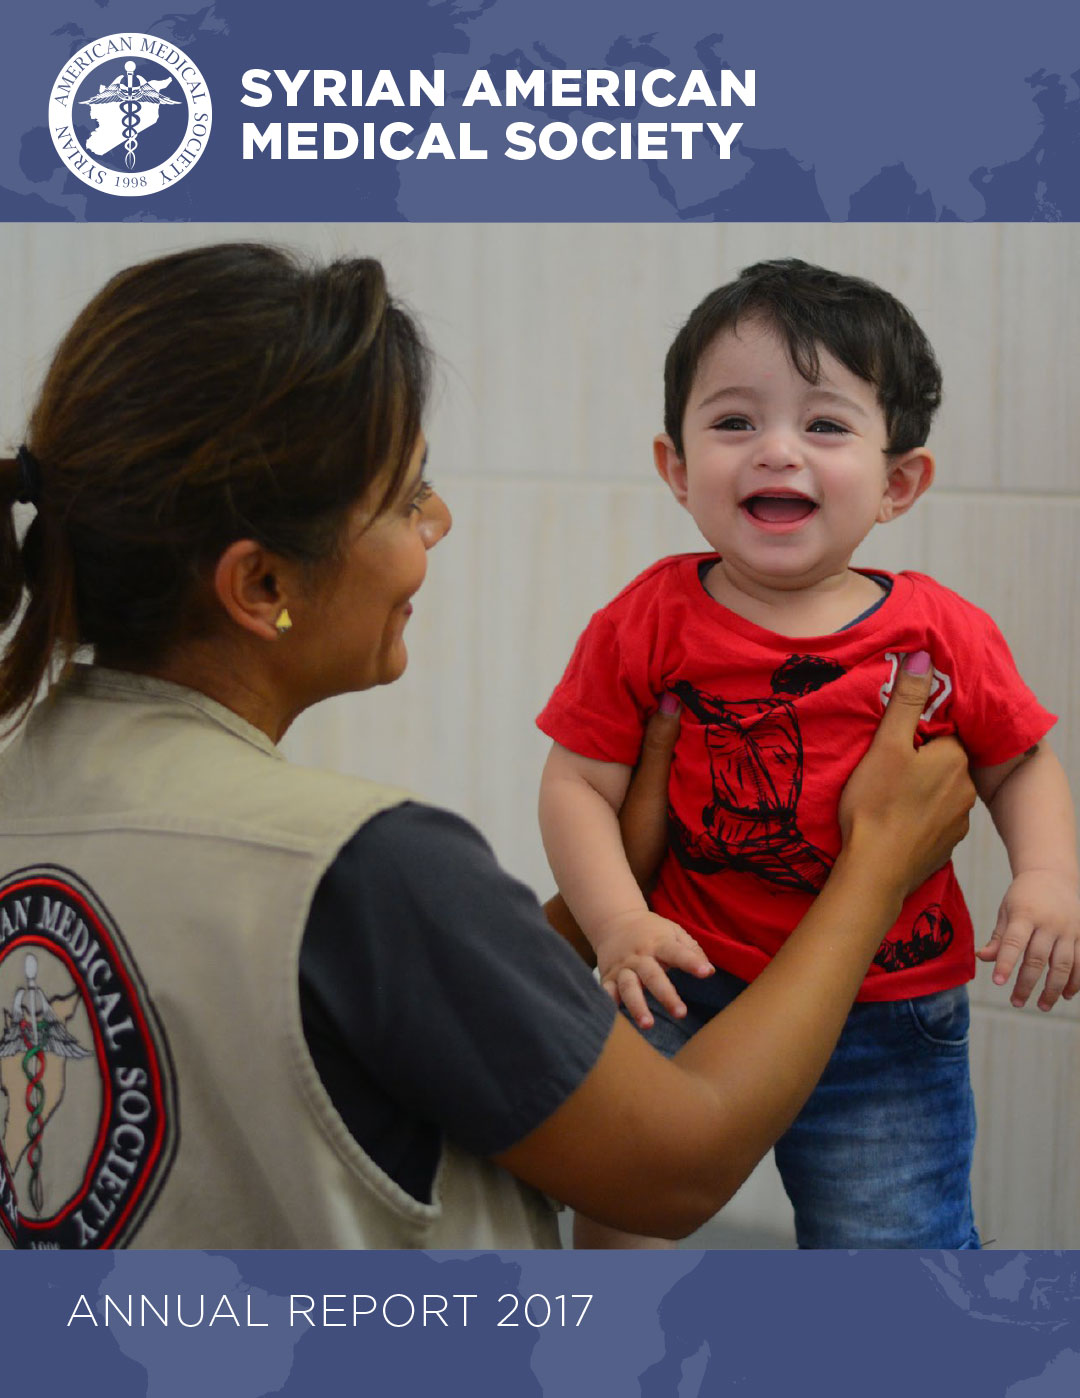 Annual report cover showing medical worker and child